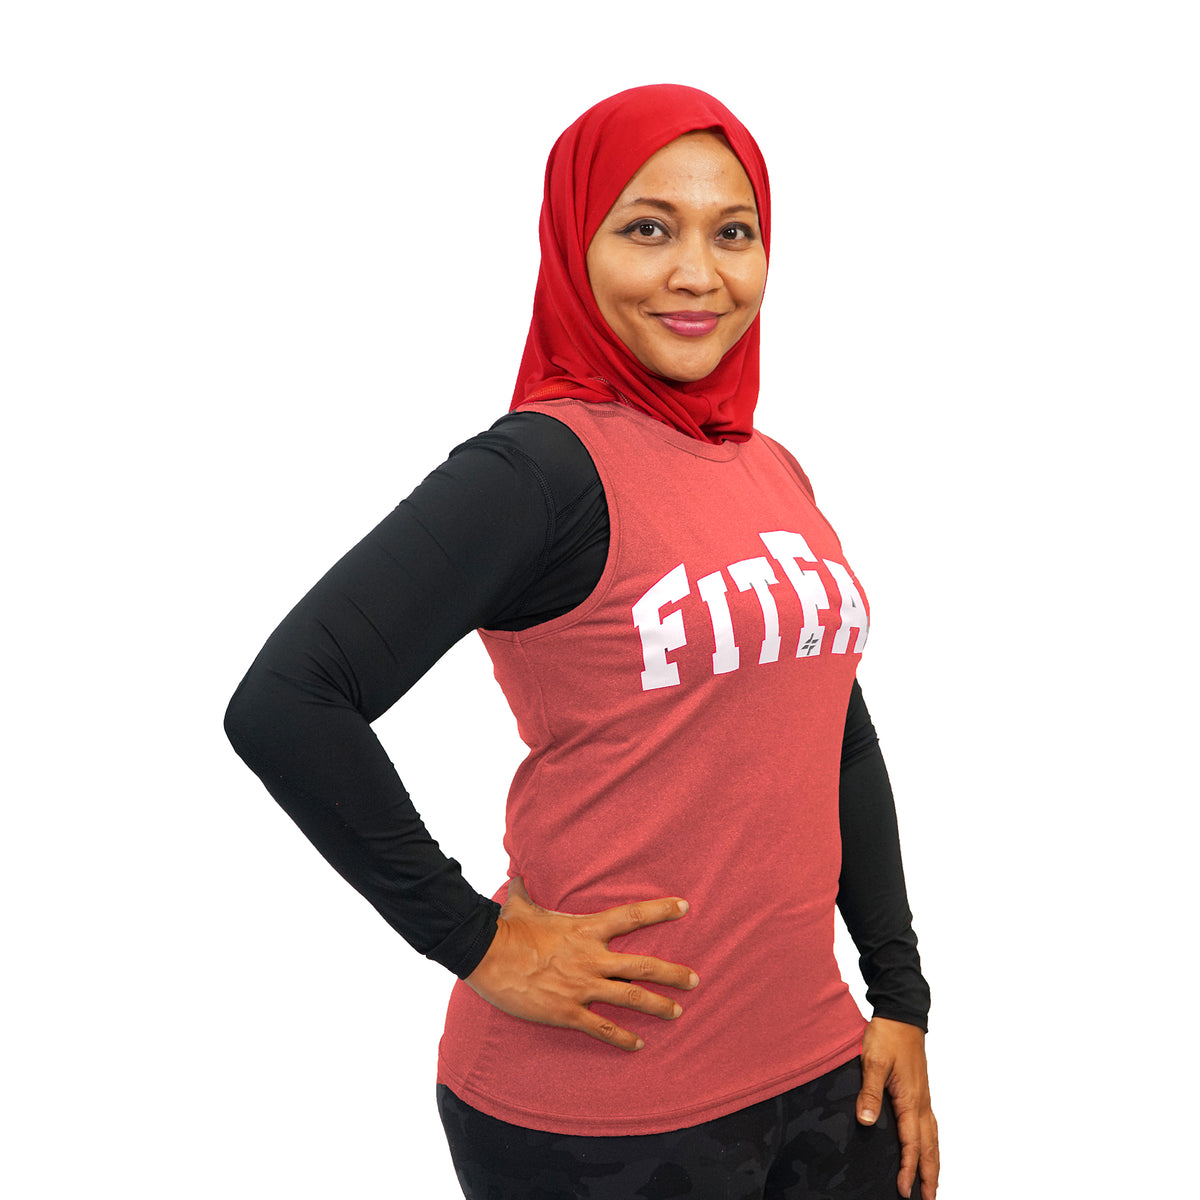 Powerlifting Top - Ready Red